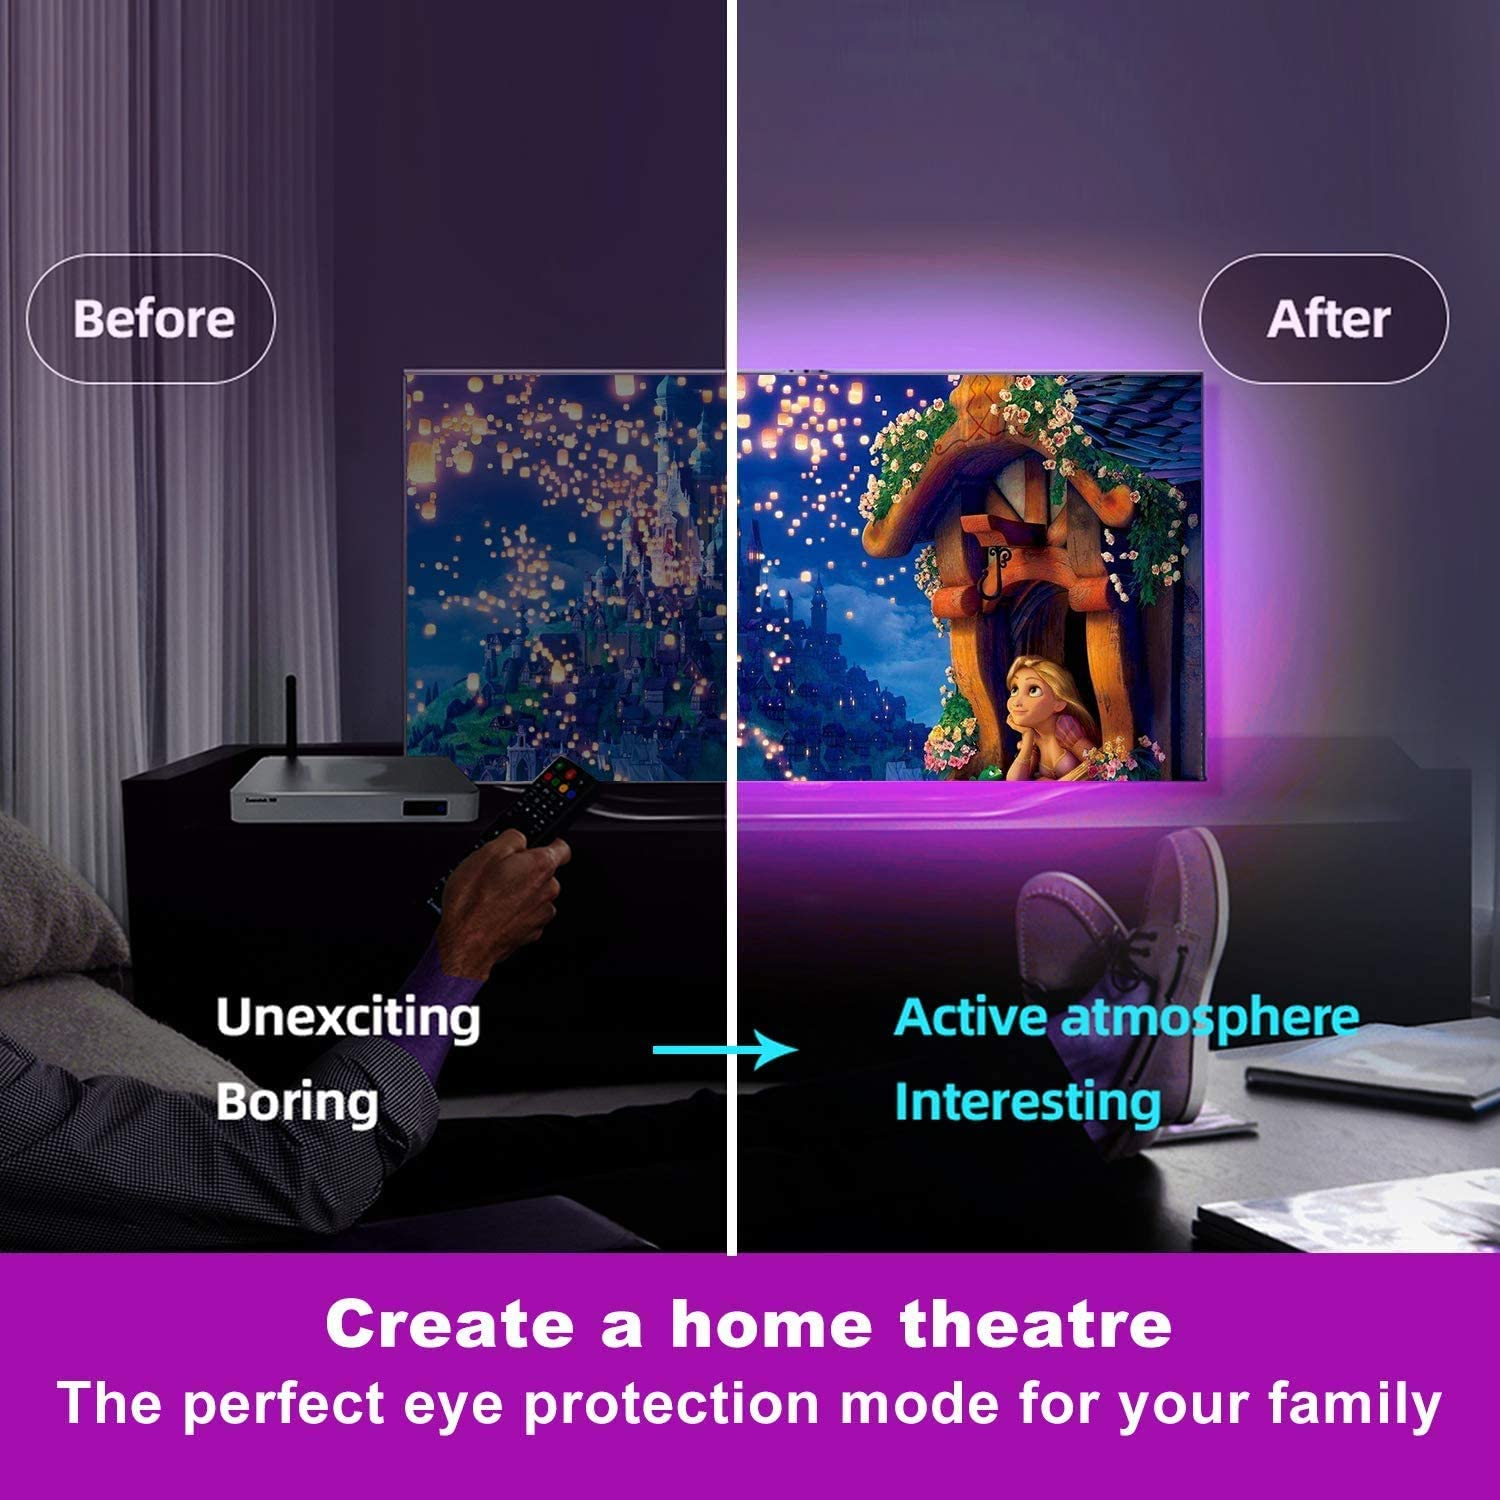 USB Mood Lights for Halloween Christmas Home TV Kitchen DIY Decoration LED Strip Lights StillCool 16.4ft Colour Changing Music Sync Backlight Lighting with Remote and Control Box